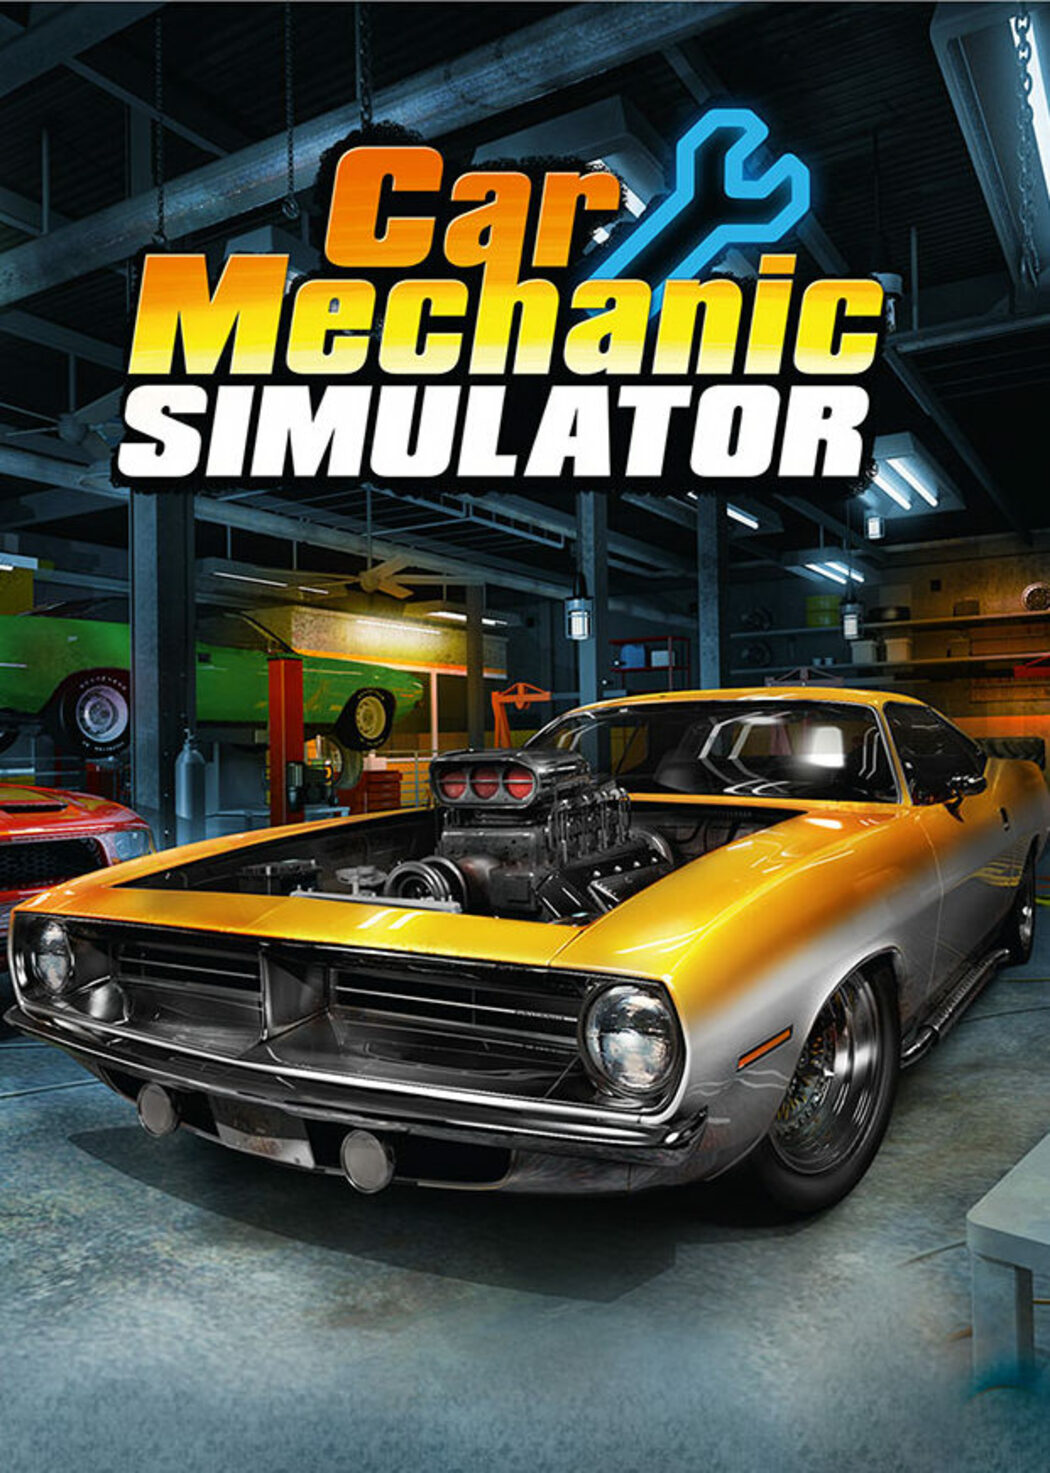 Car Mechanic Simulator 2018 Car List : mechanic, simulator, Mechanic, Simulator, Steam, Price, ENEBA